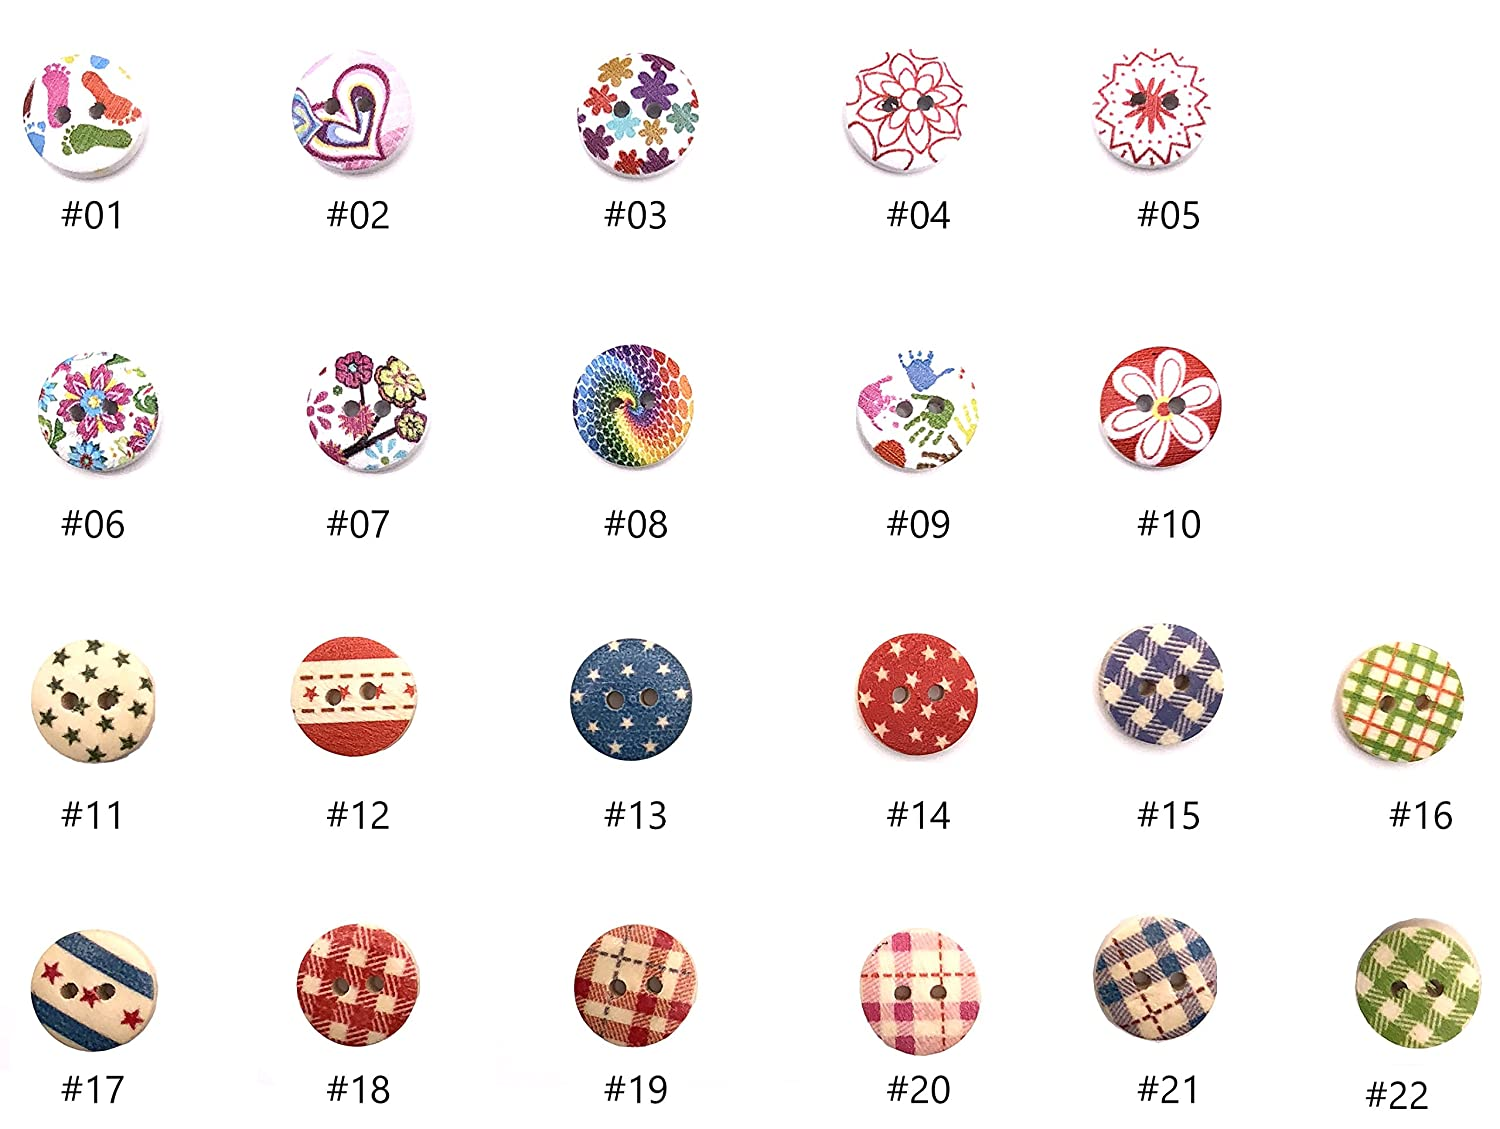 200pcs DIY Mixed Wood Wooden Buttons 2 Holes for Children Handmade Art Pattern Clothing Sewing Scrapbooking Knitting Crafts Button Round Multicolor Colorful Single